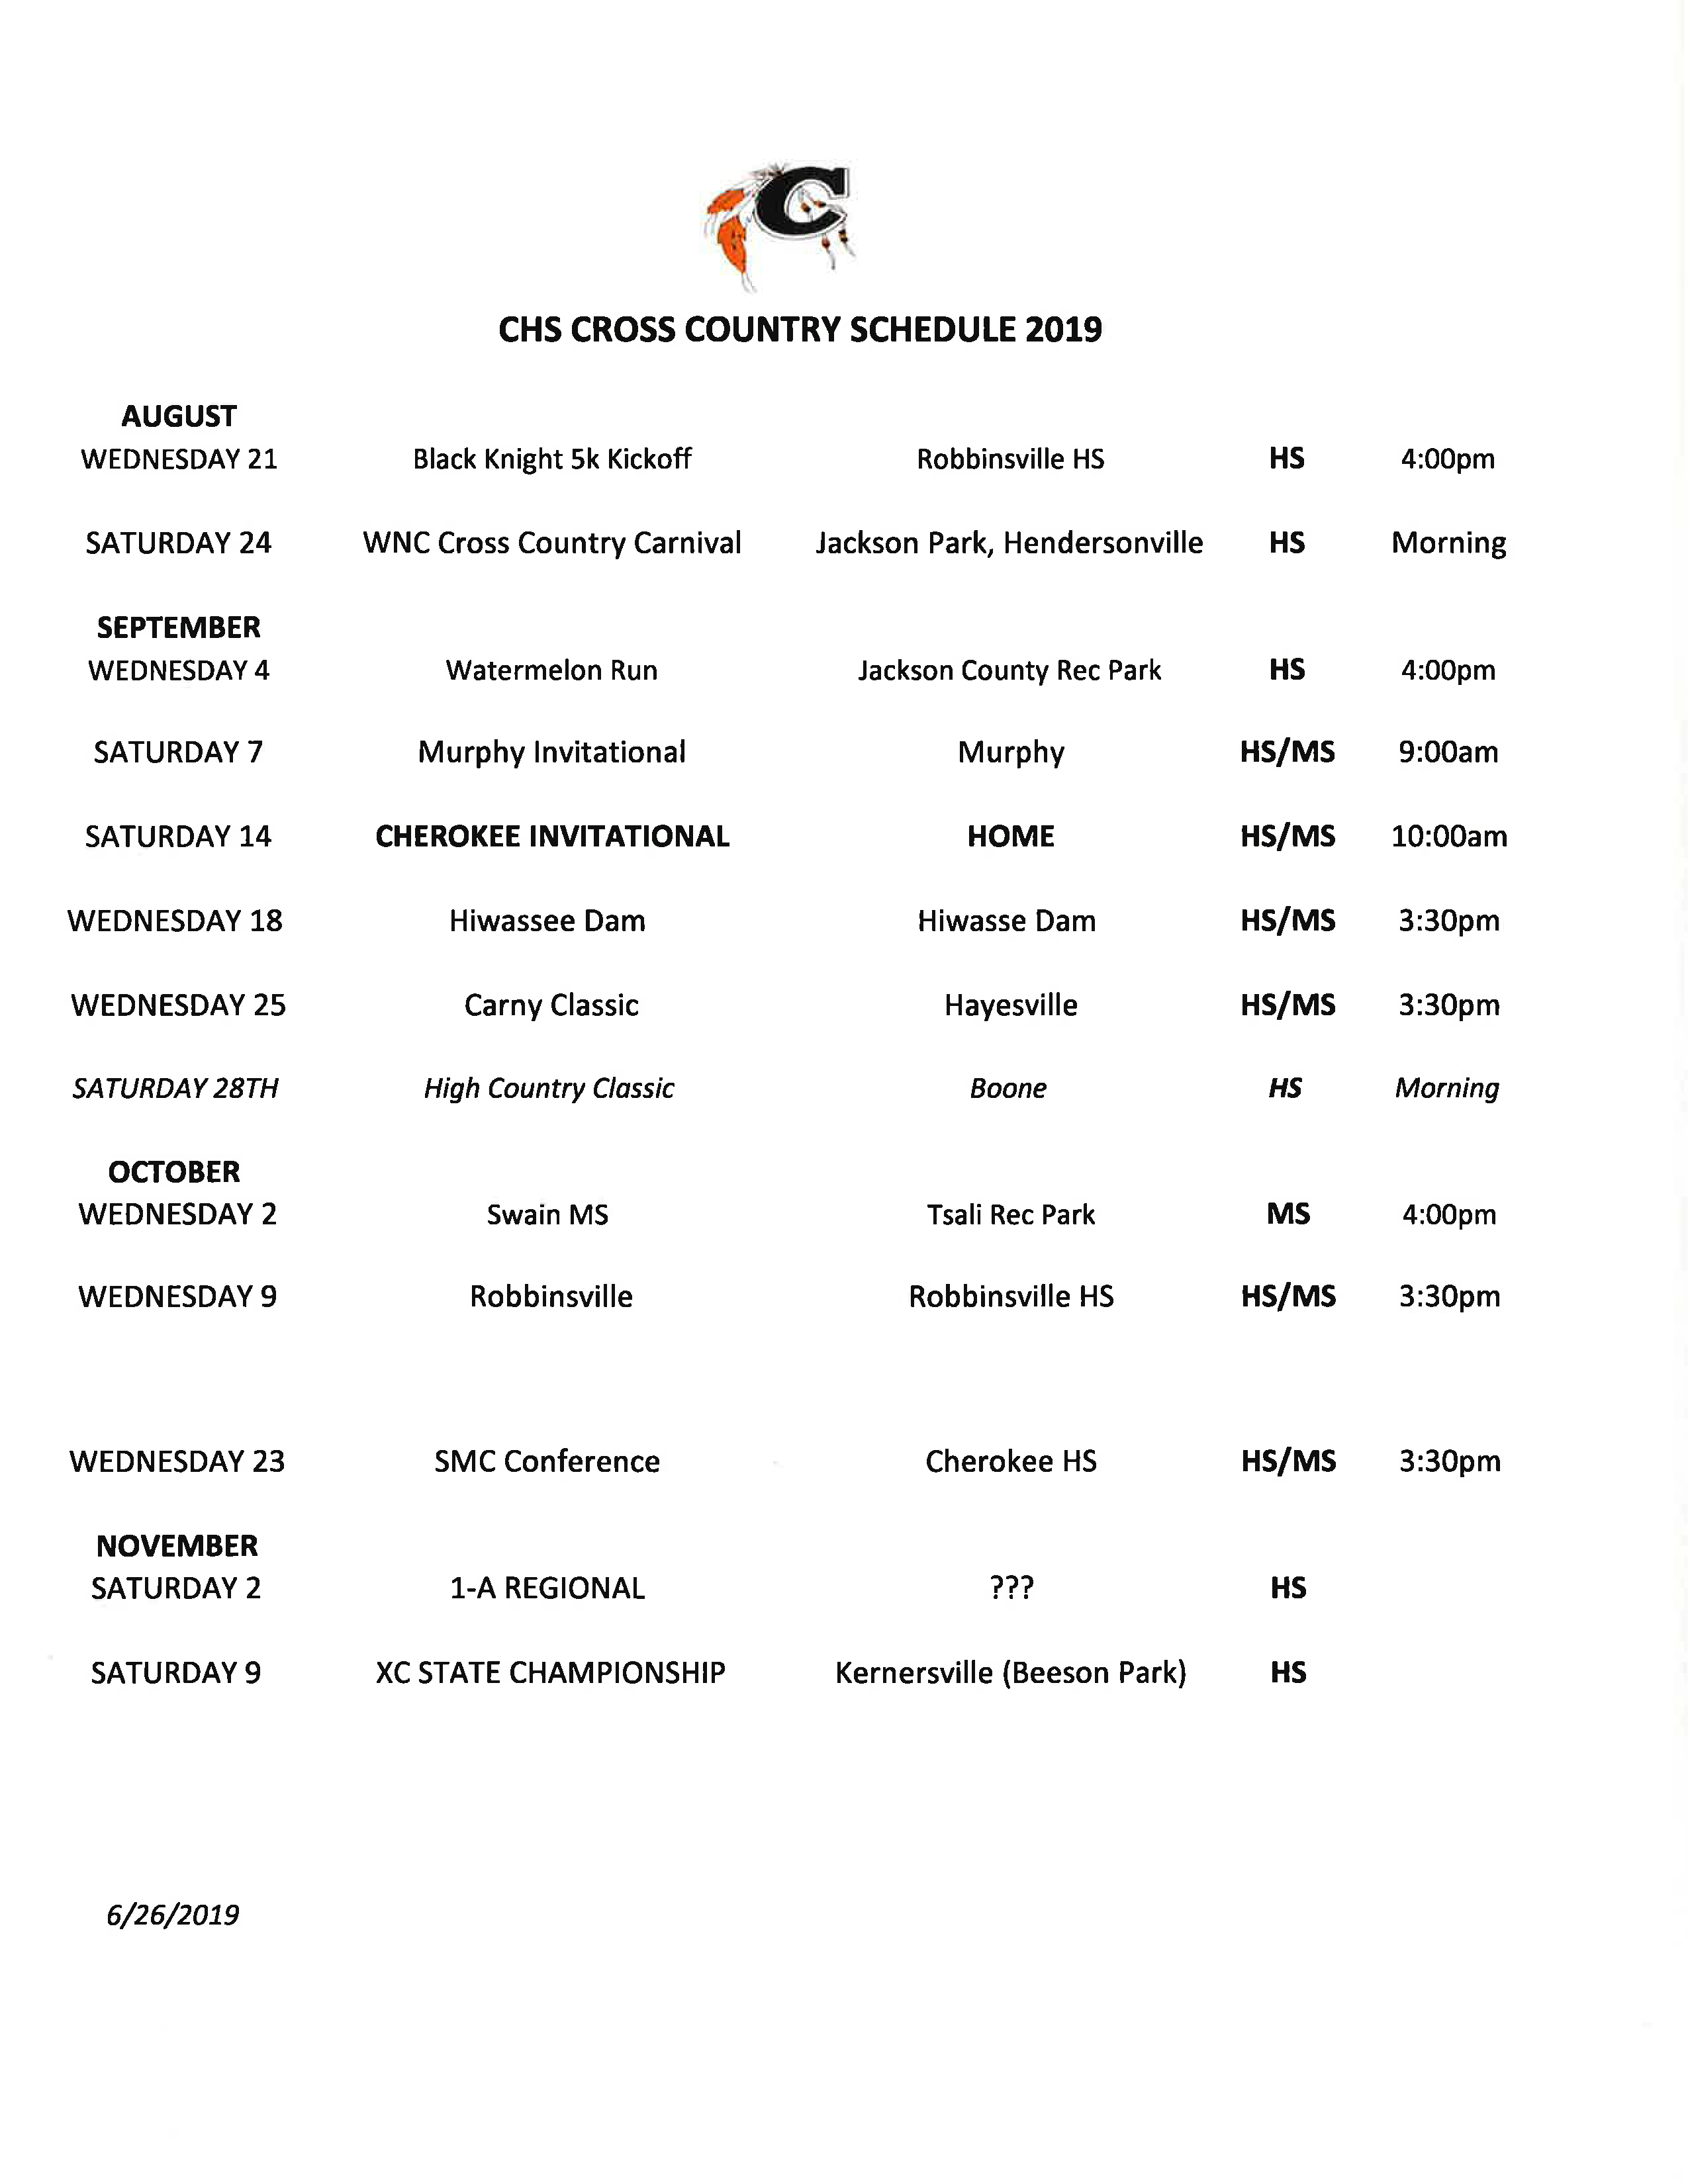 2019-2020 CHS Cross Country Schedule